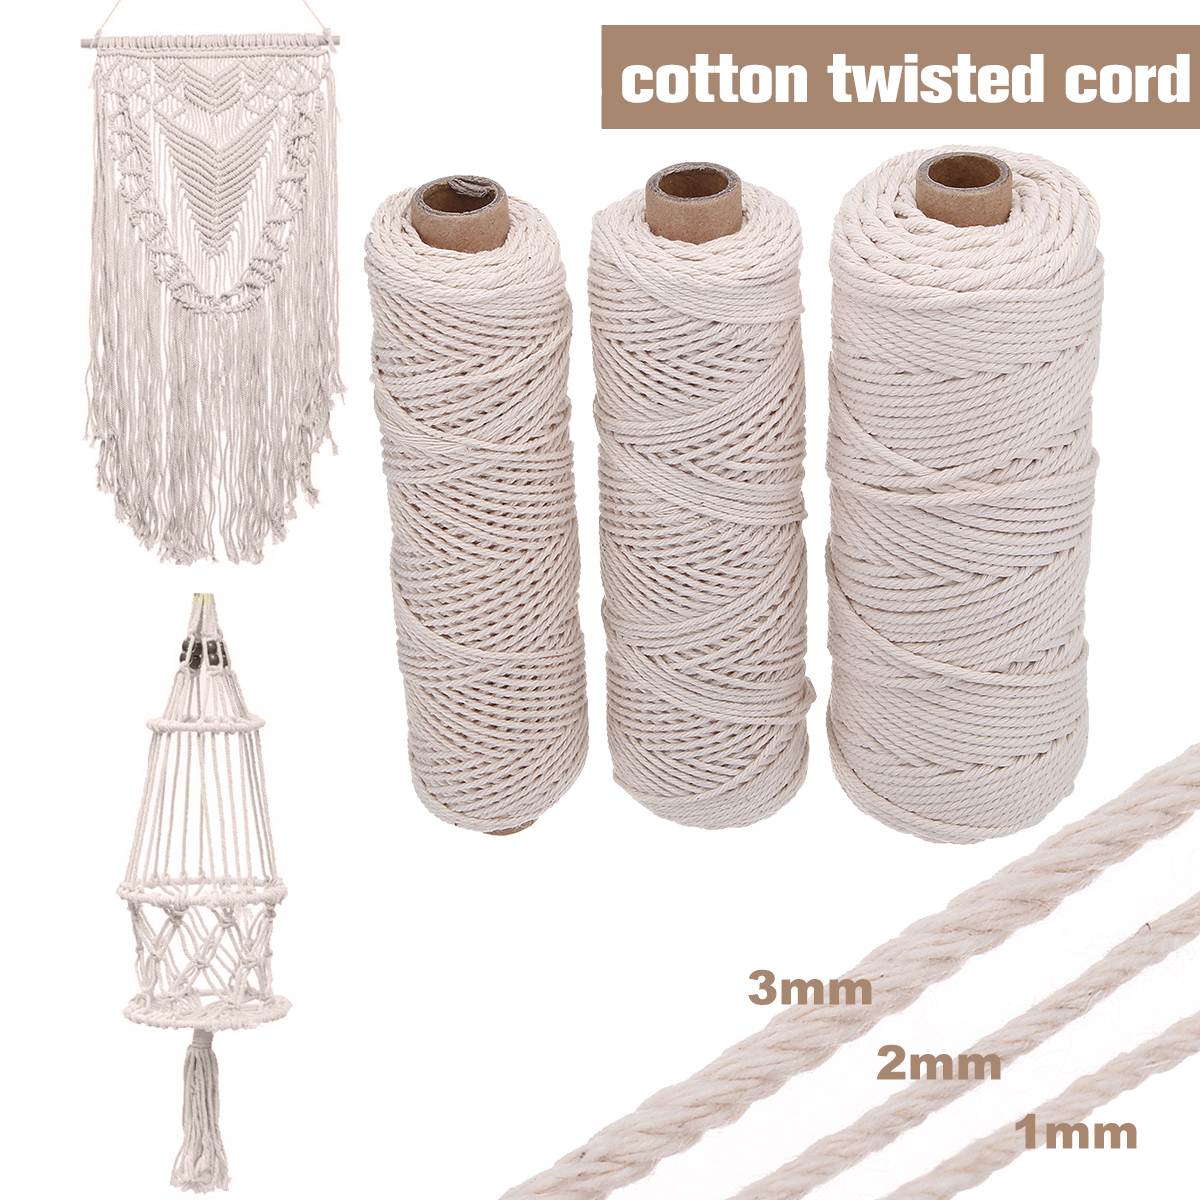 Wholesale wall decorative Diy Handmade Braided rope 100% Natural Cotton white macrame cord twisted cord